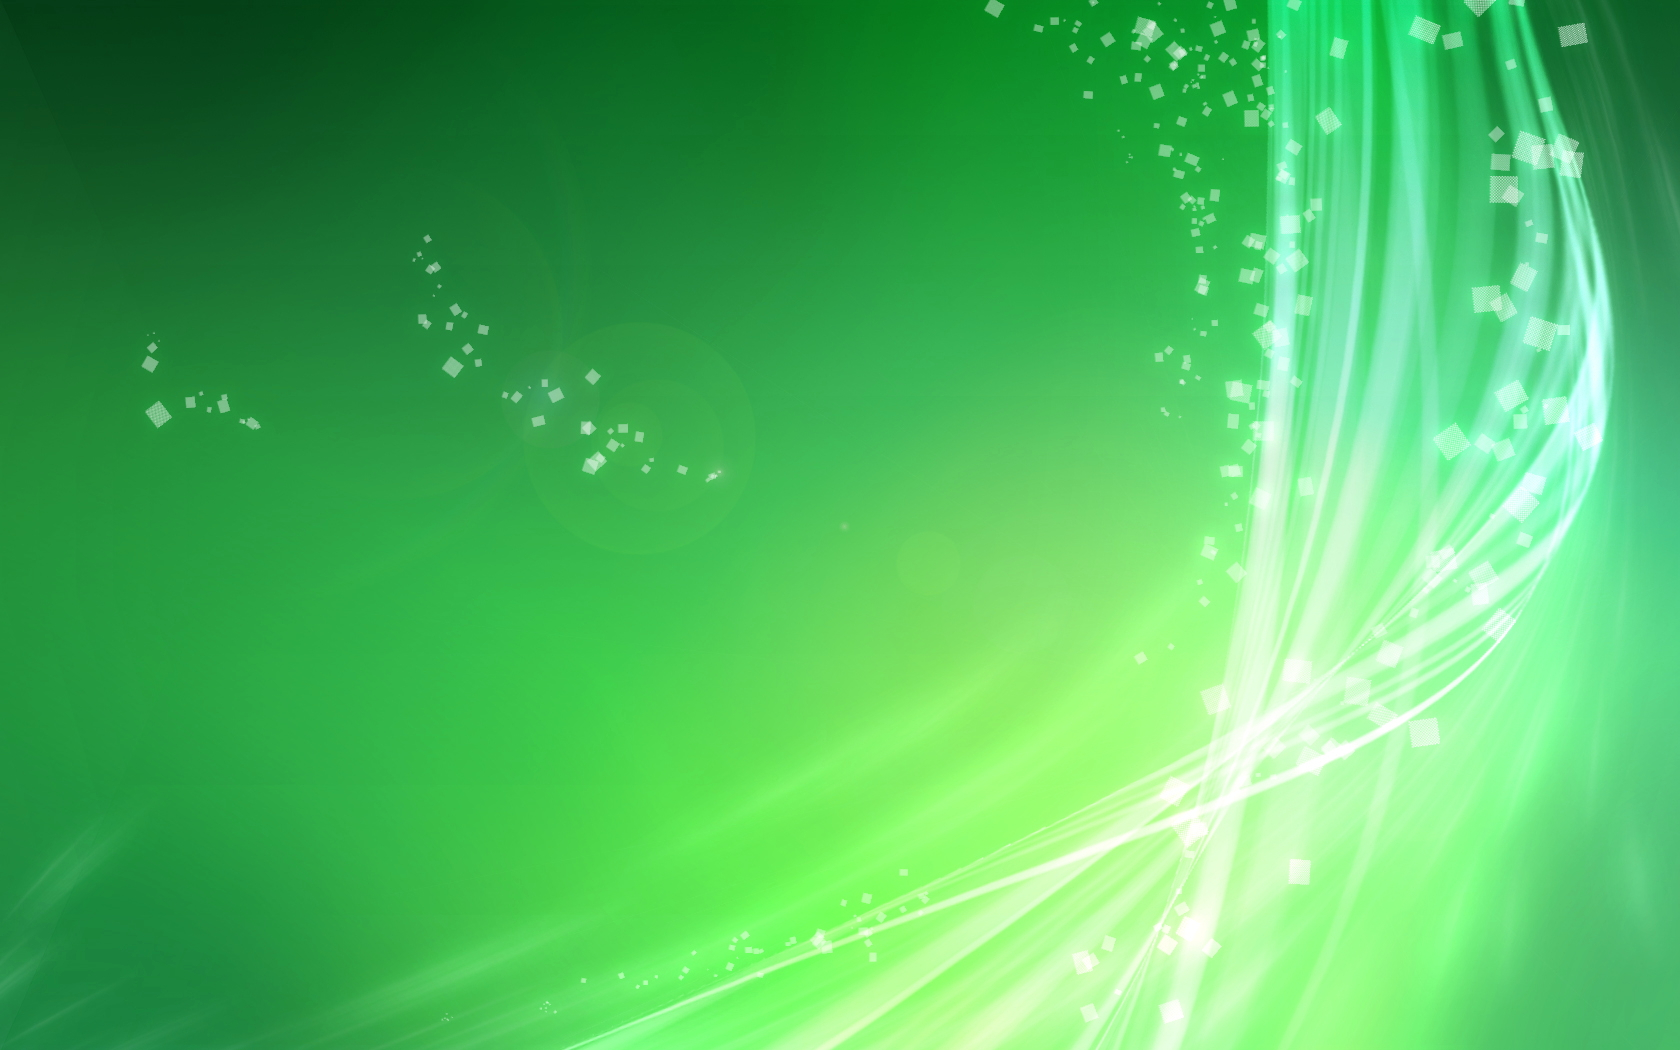 hd light green wallpaper 24344